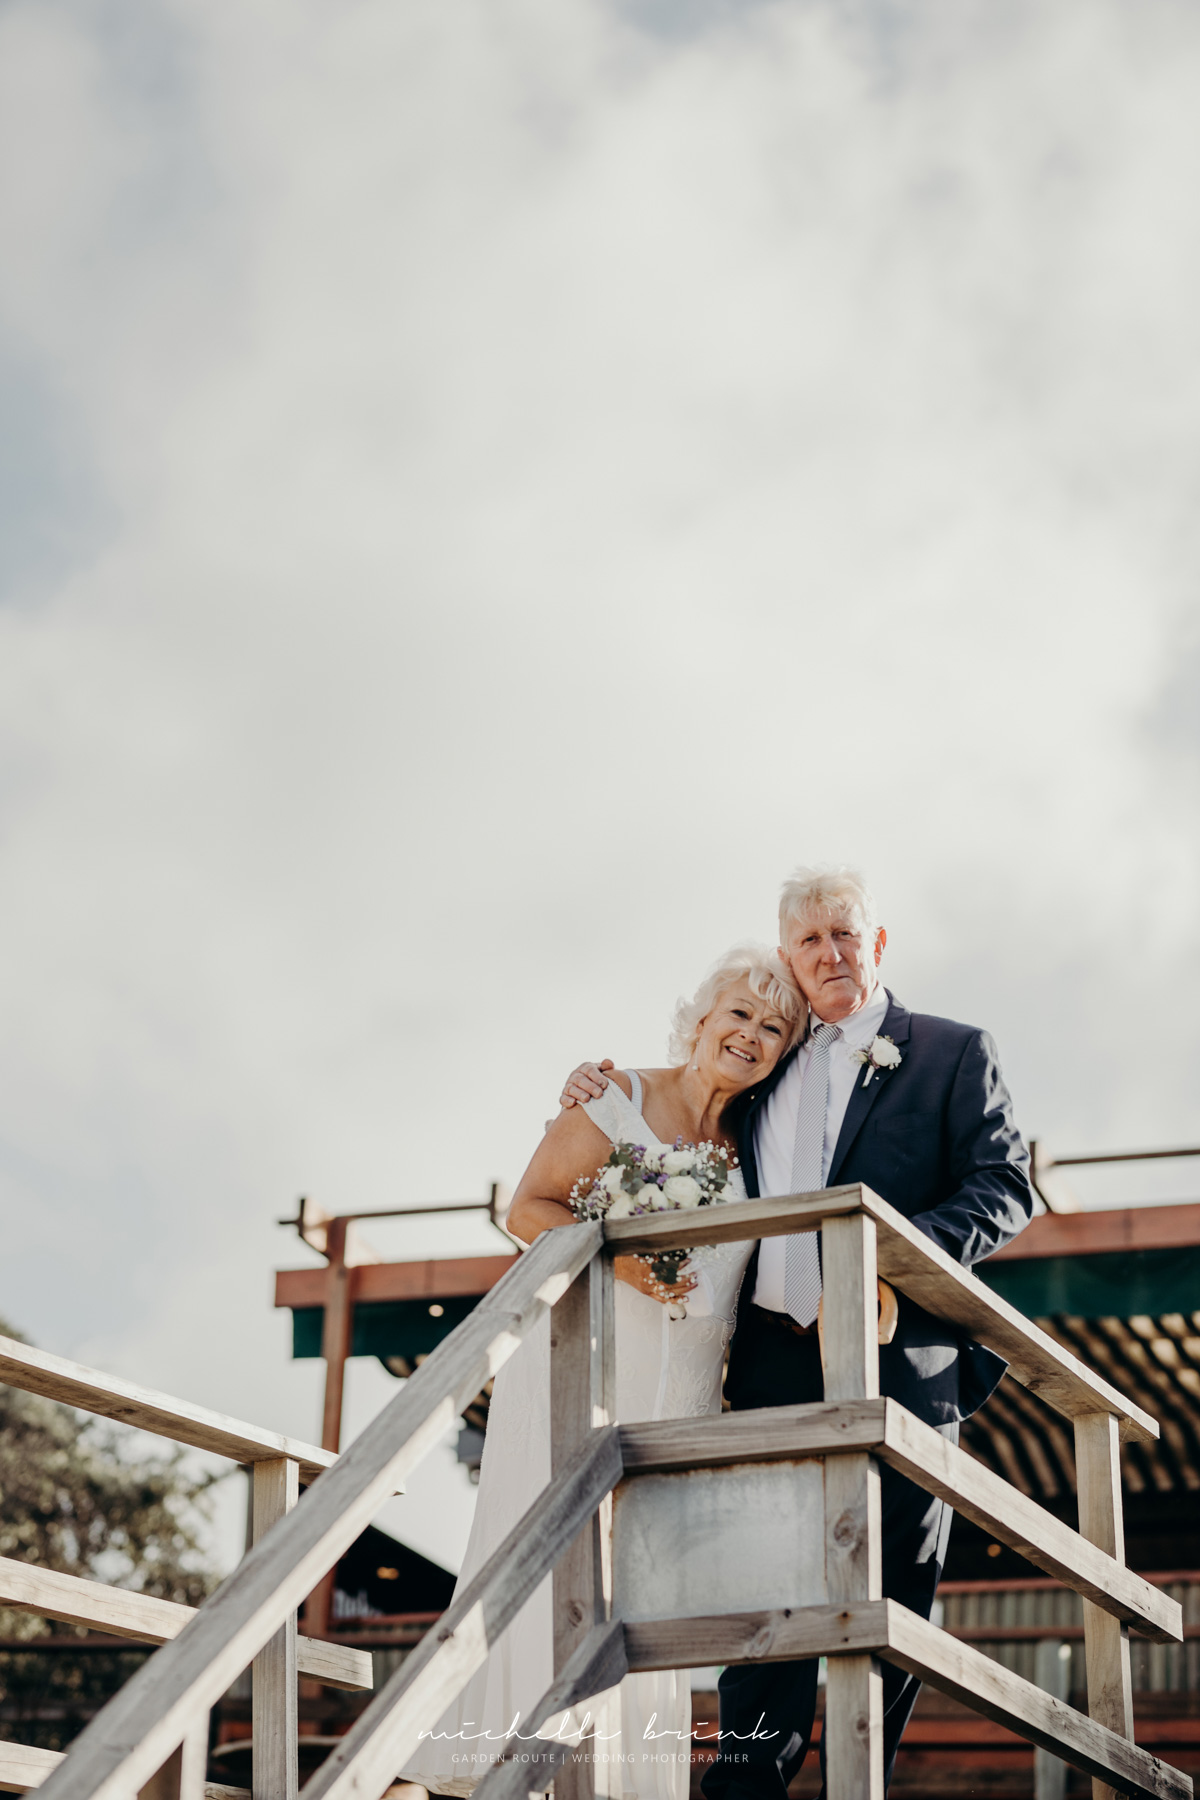 Anne & Trevor | Wedding | Lookout Beach, Plett